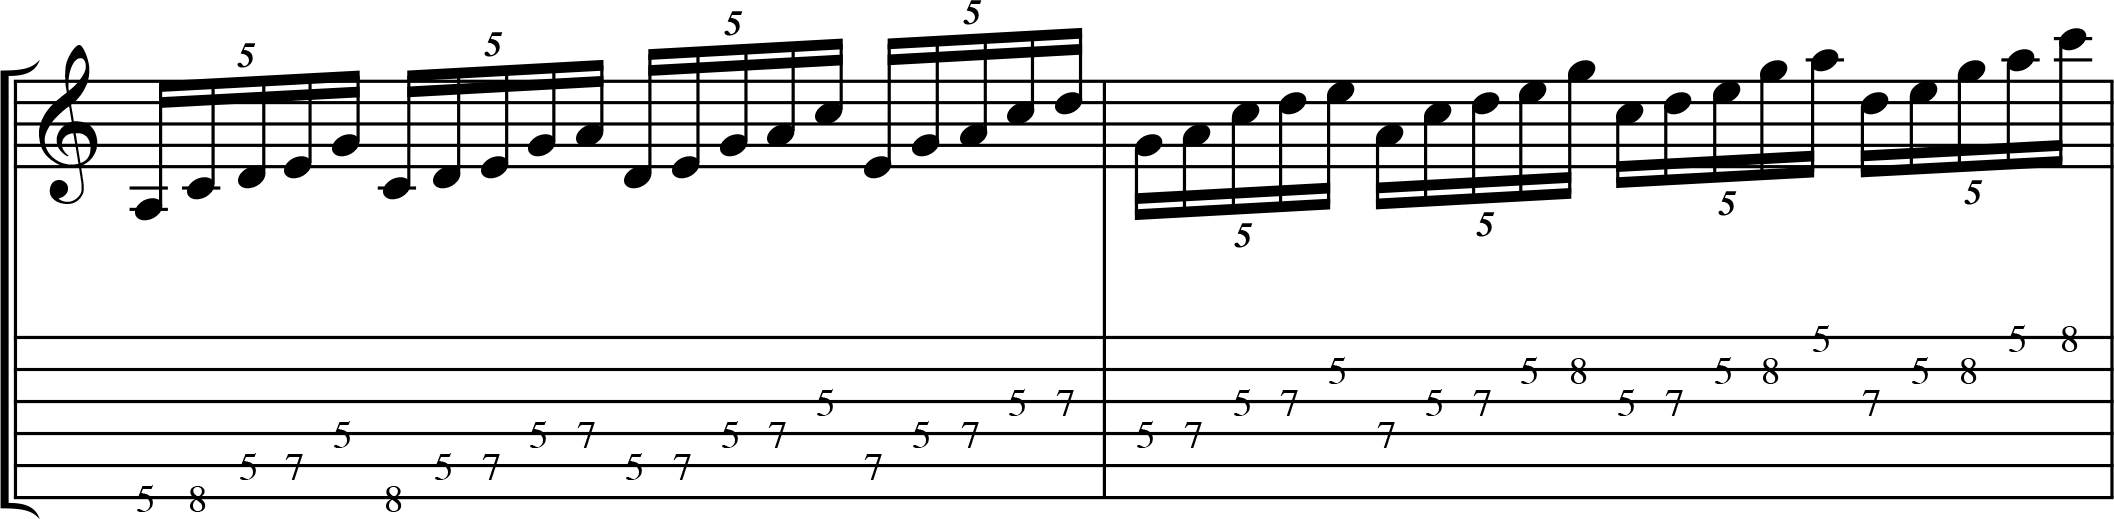 Notation for pentatonic scale played in sixteenth note quintuplets.